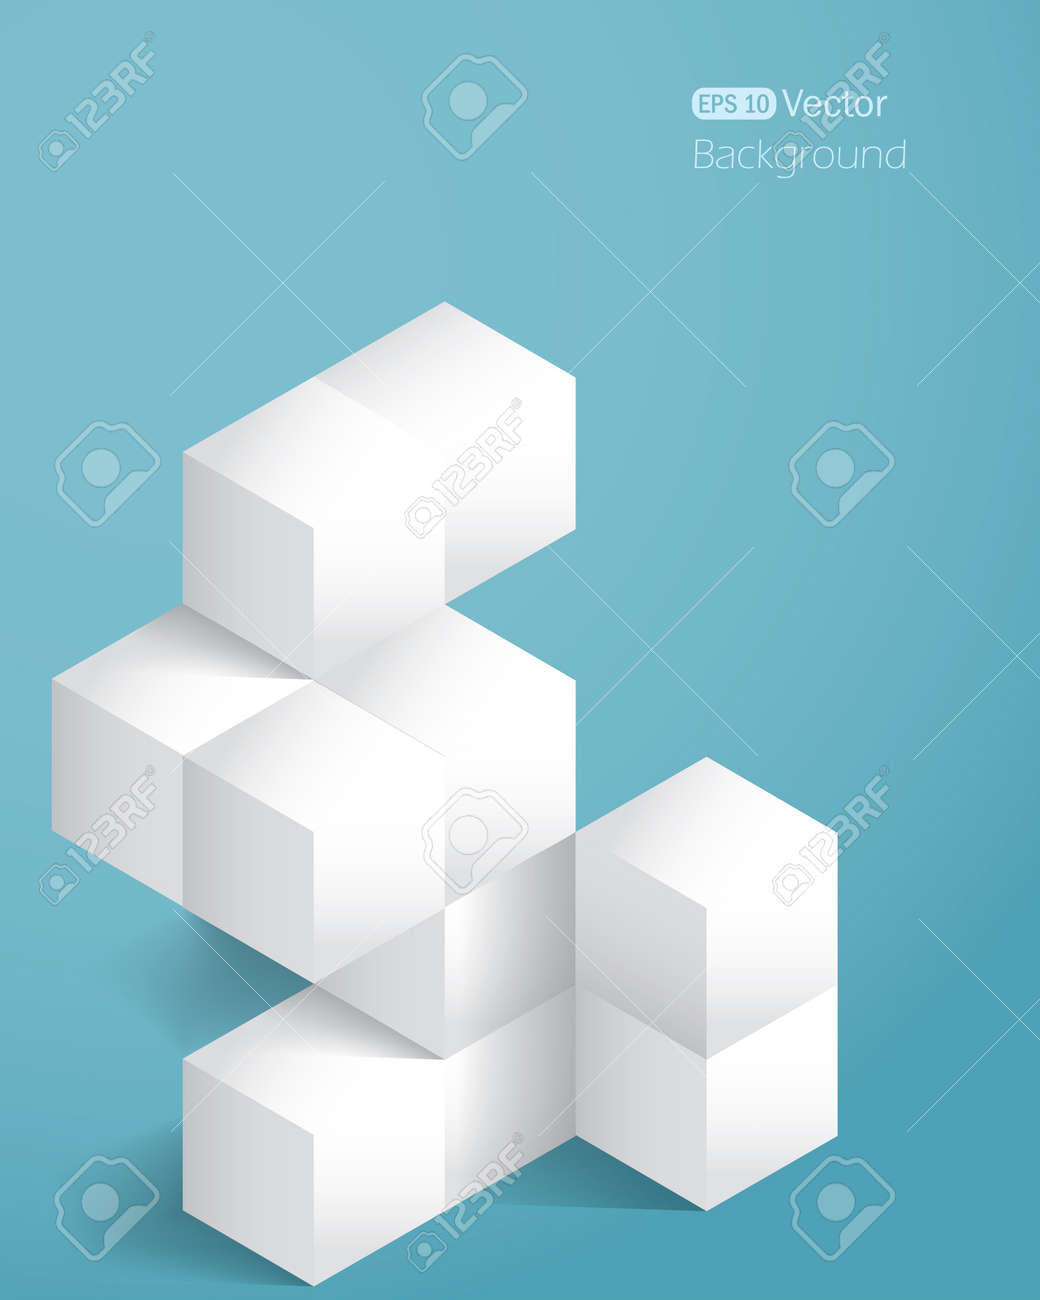 Realistic background with cubes  Vector illustration Stock Vector - 18981996